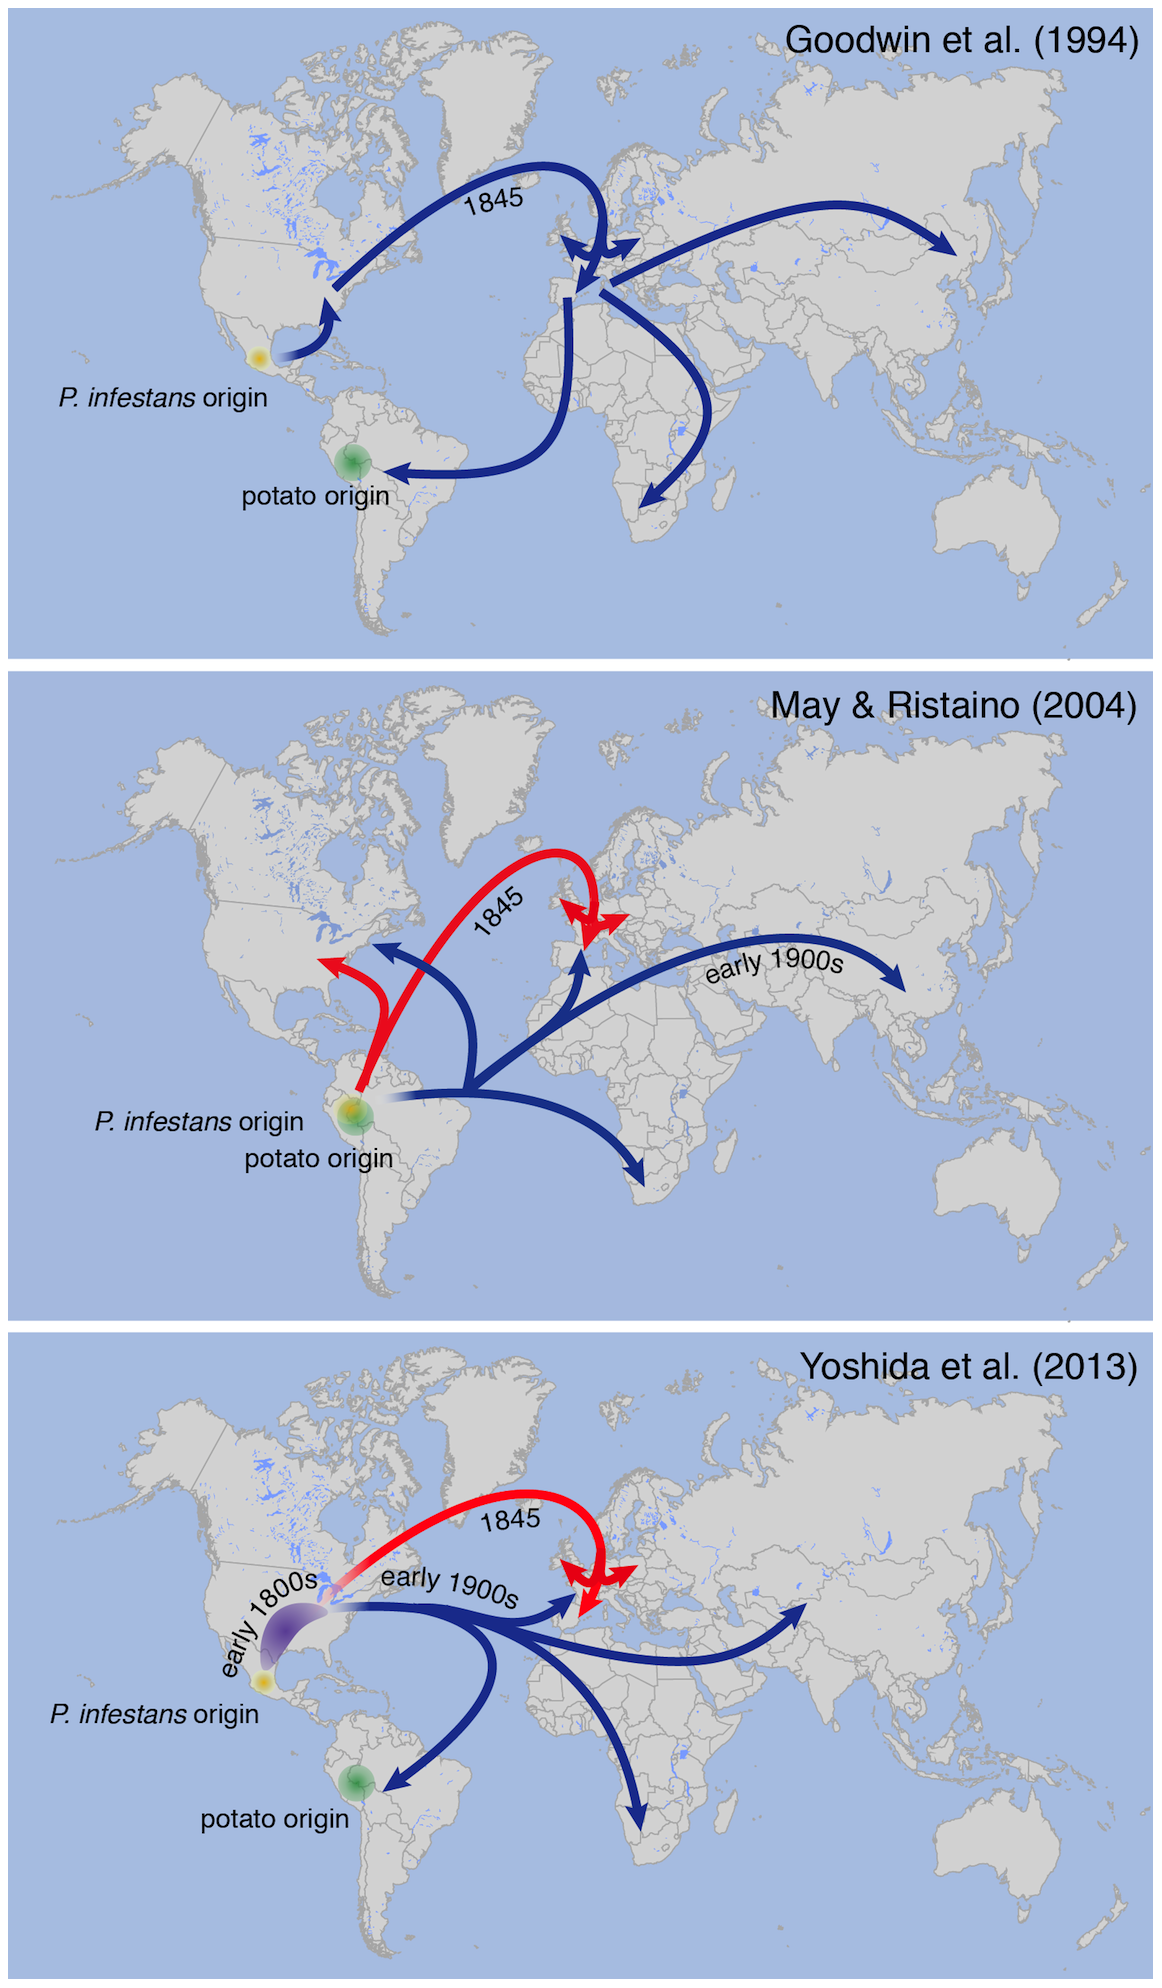 Different models proposed for 19th-century <i>P.</i> infestans pandemics.